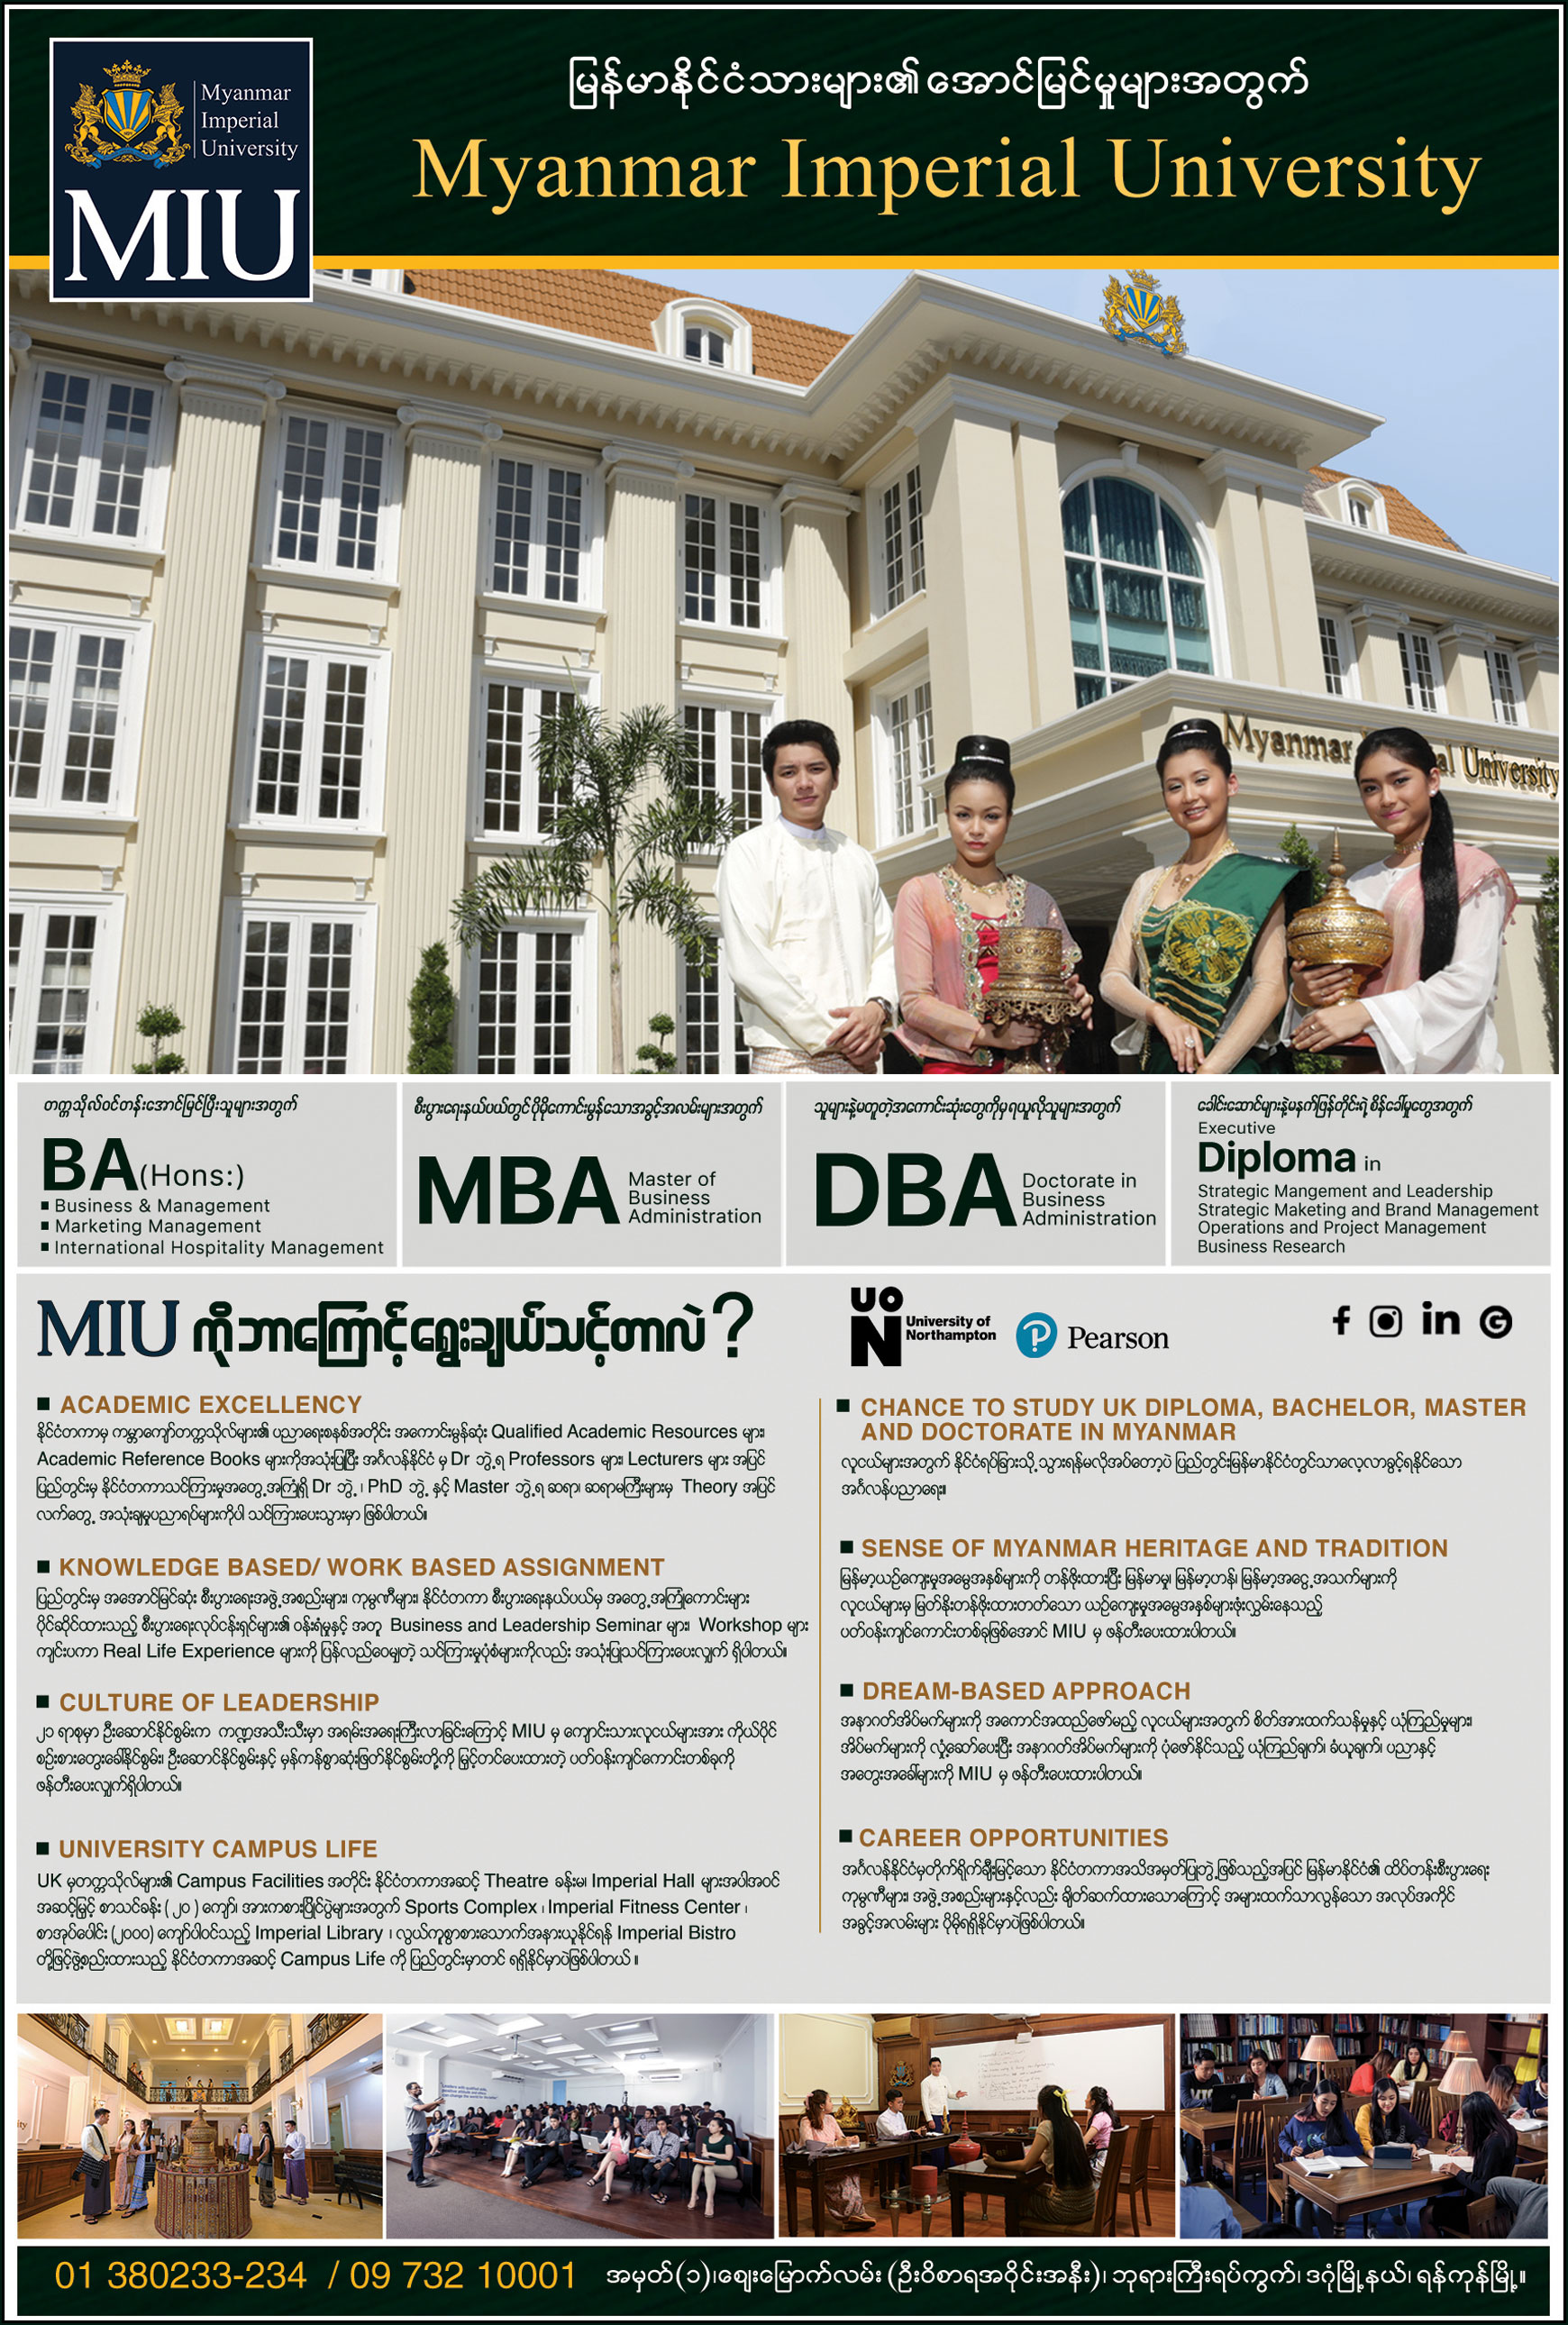 MIU-(Myanmar-Imperial-University)_International-Universities-&-Colleges_84.jpg